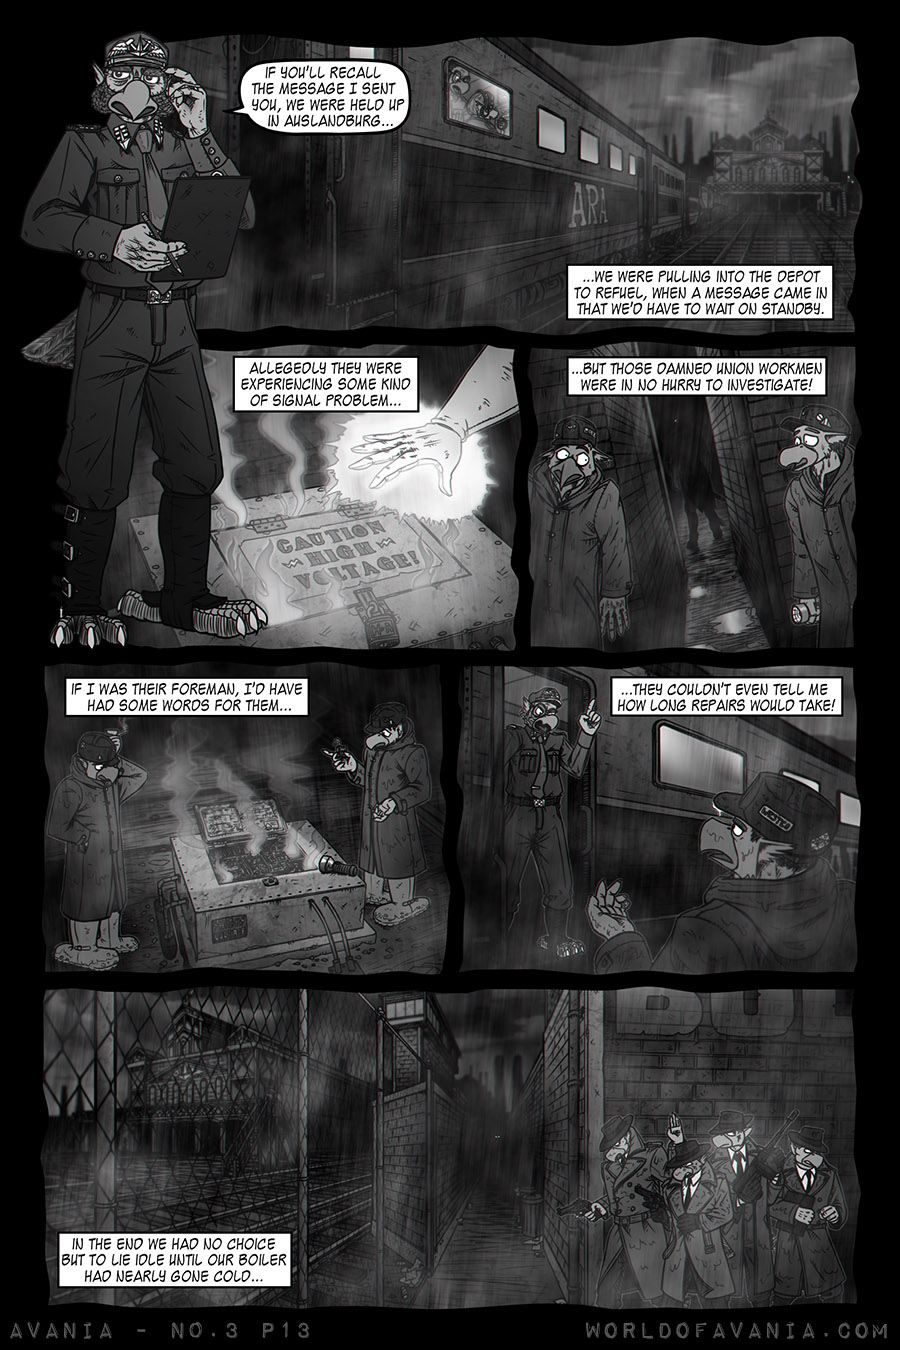 Avania Comic - Issue No.3, Page 13